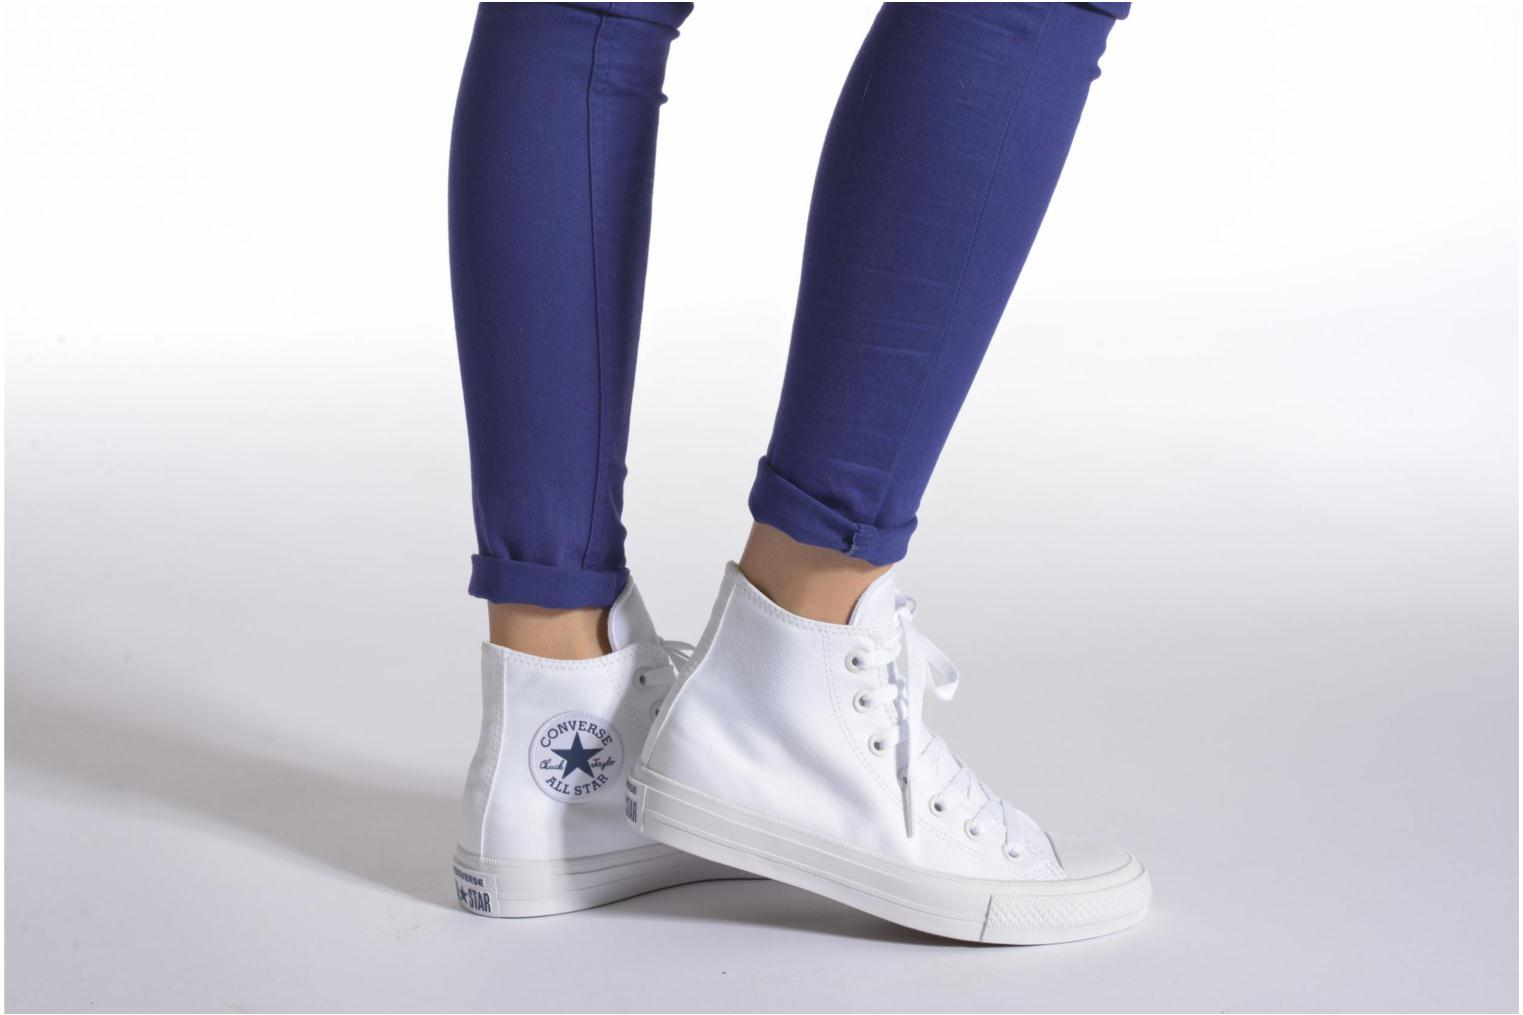 Chuck Taylor All Star II Hi W Parchment/Navy/White